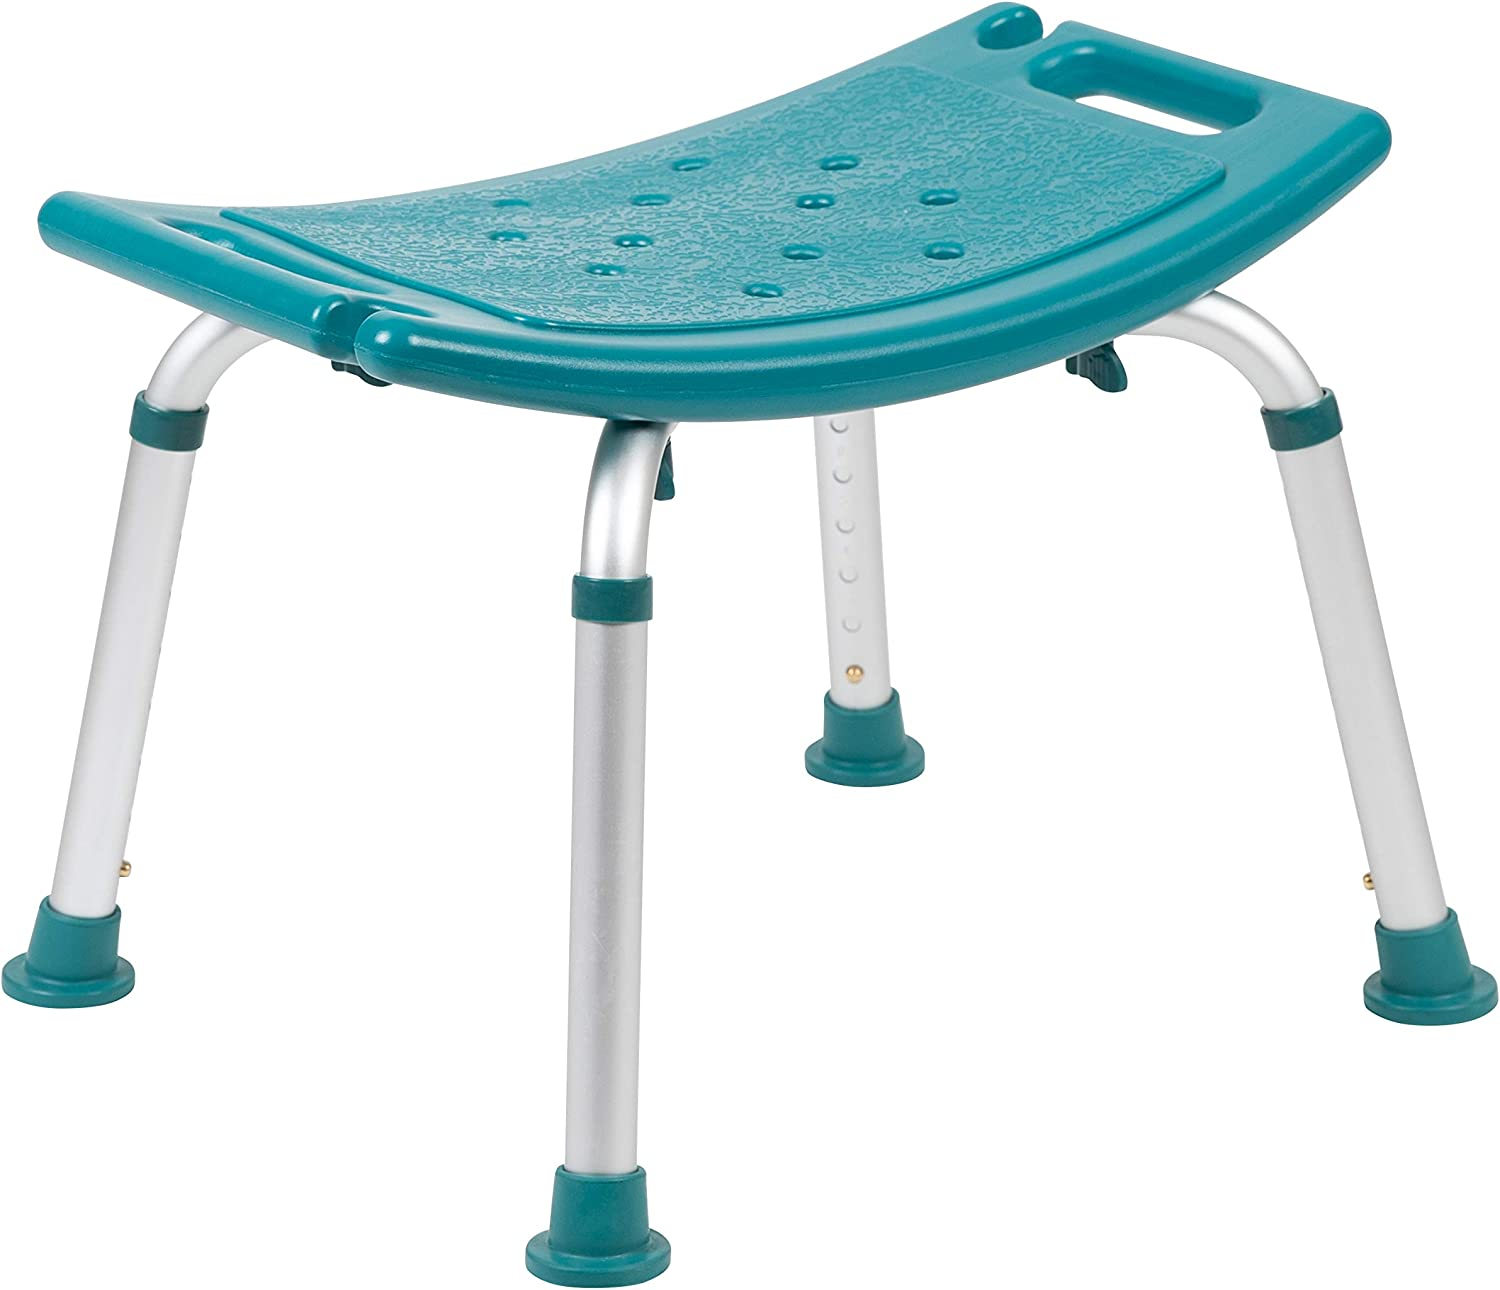 Flash Furniture HERCULES Series Tool-Free and Quick Assembly, 300 Lb. Capacity, Adjustable Teal Bath & Shower Chair with Non-slip Feet